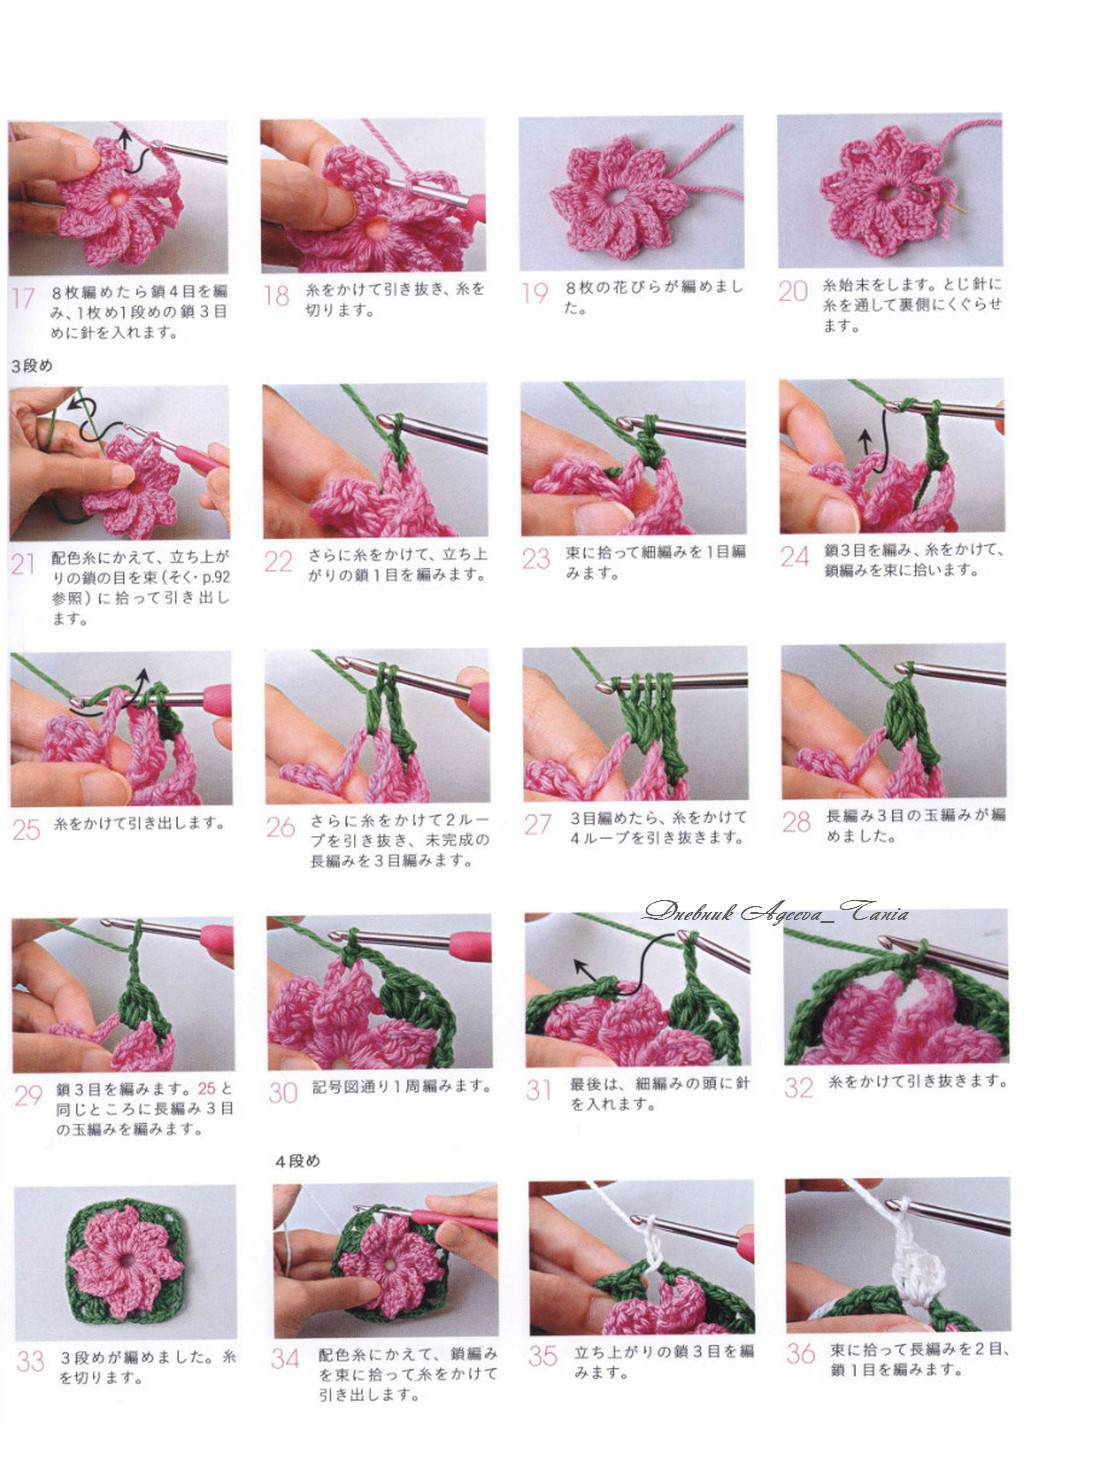 How To Crochet Flowers Thick Petals Tutorial 44 : Detailed Crochet Tutorial for Flower Square Blanket ...